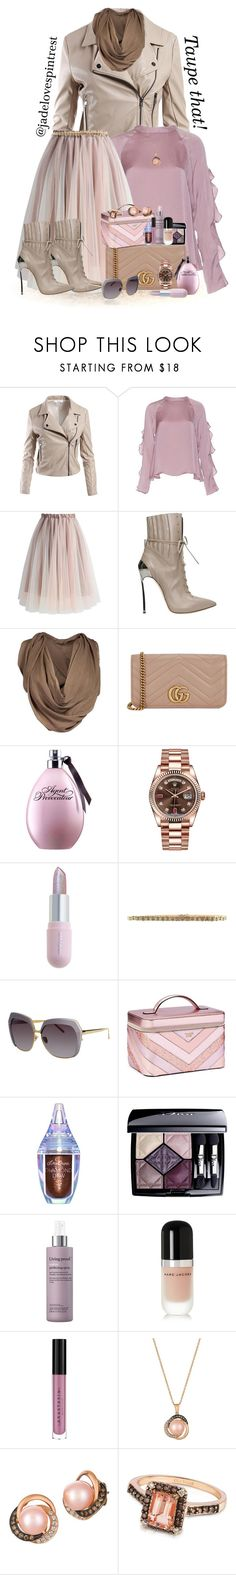 """Taupe That!"" by jadelovespintrest ❤ liked on Polyvore featuring Sans Souci, NLY Trend, Chicwish, Casadei, Maison Margiela, Gucci, Rolex, Winky Lux, Etienne Aigner and Linda Farrow"